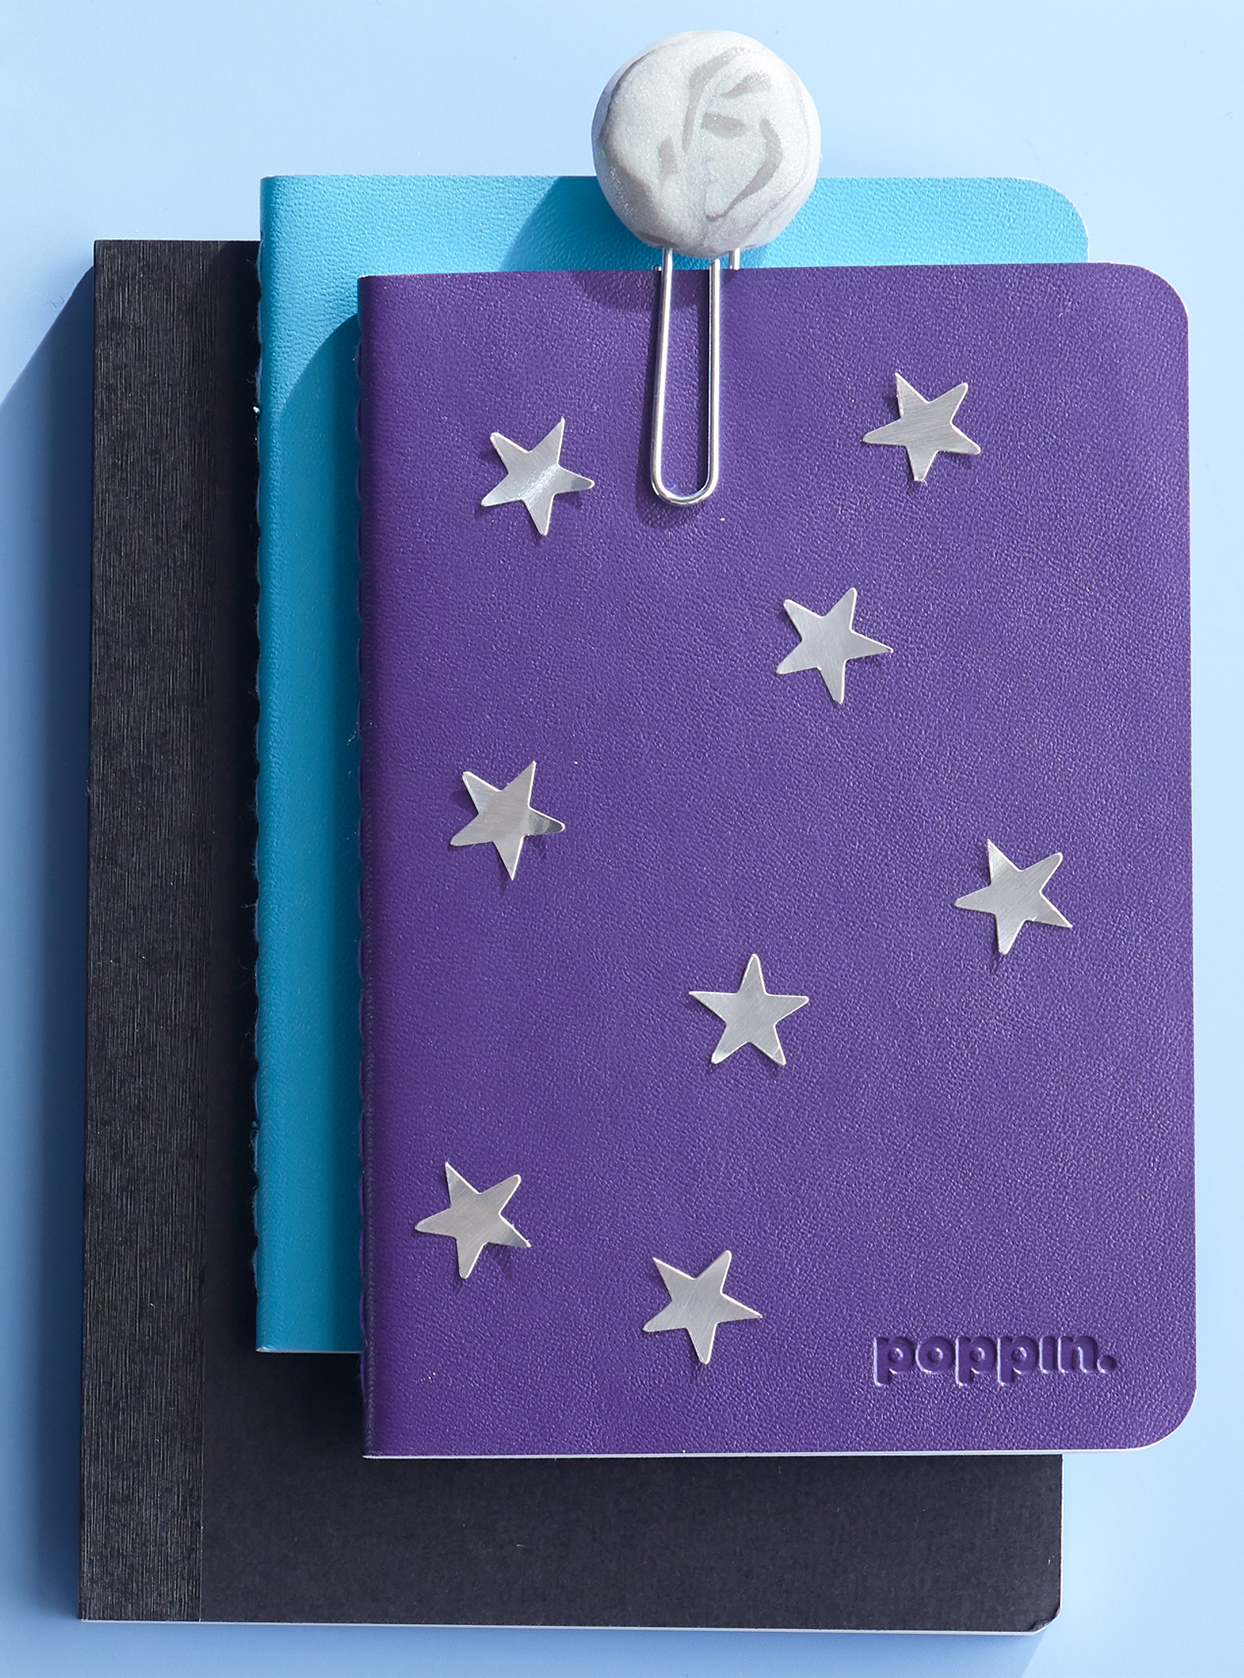 star stickers on notebooks